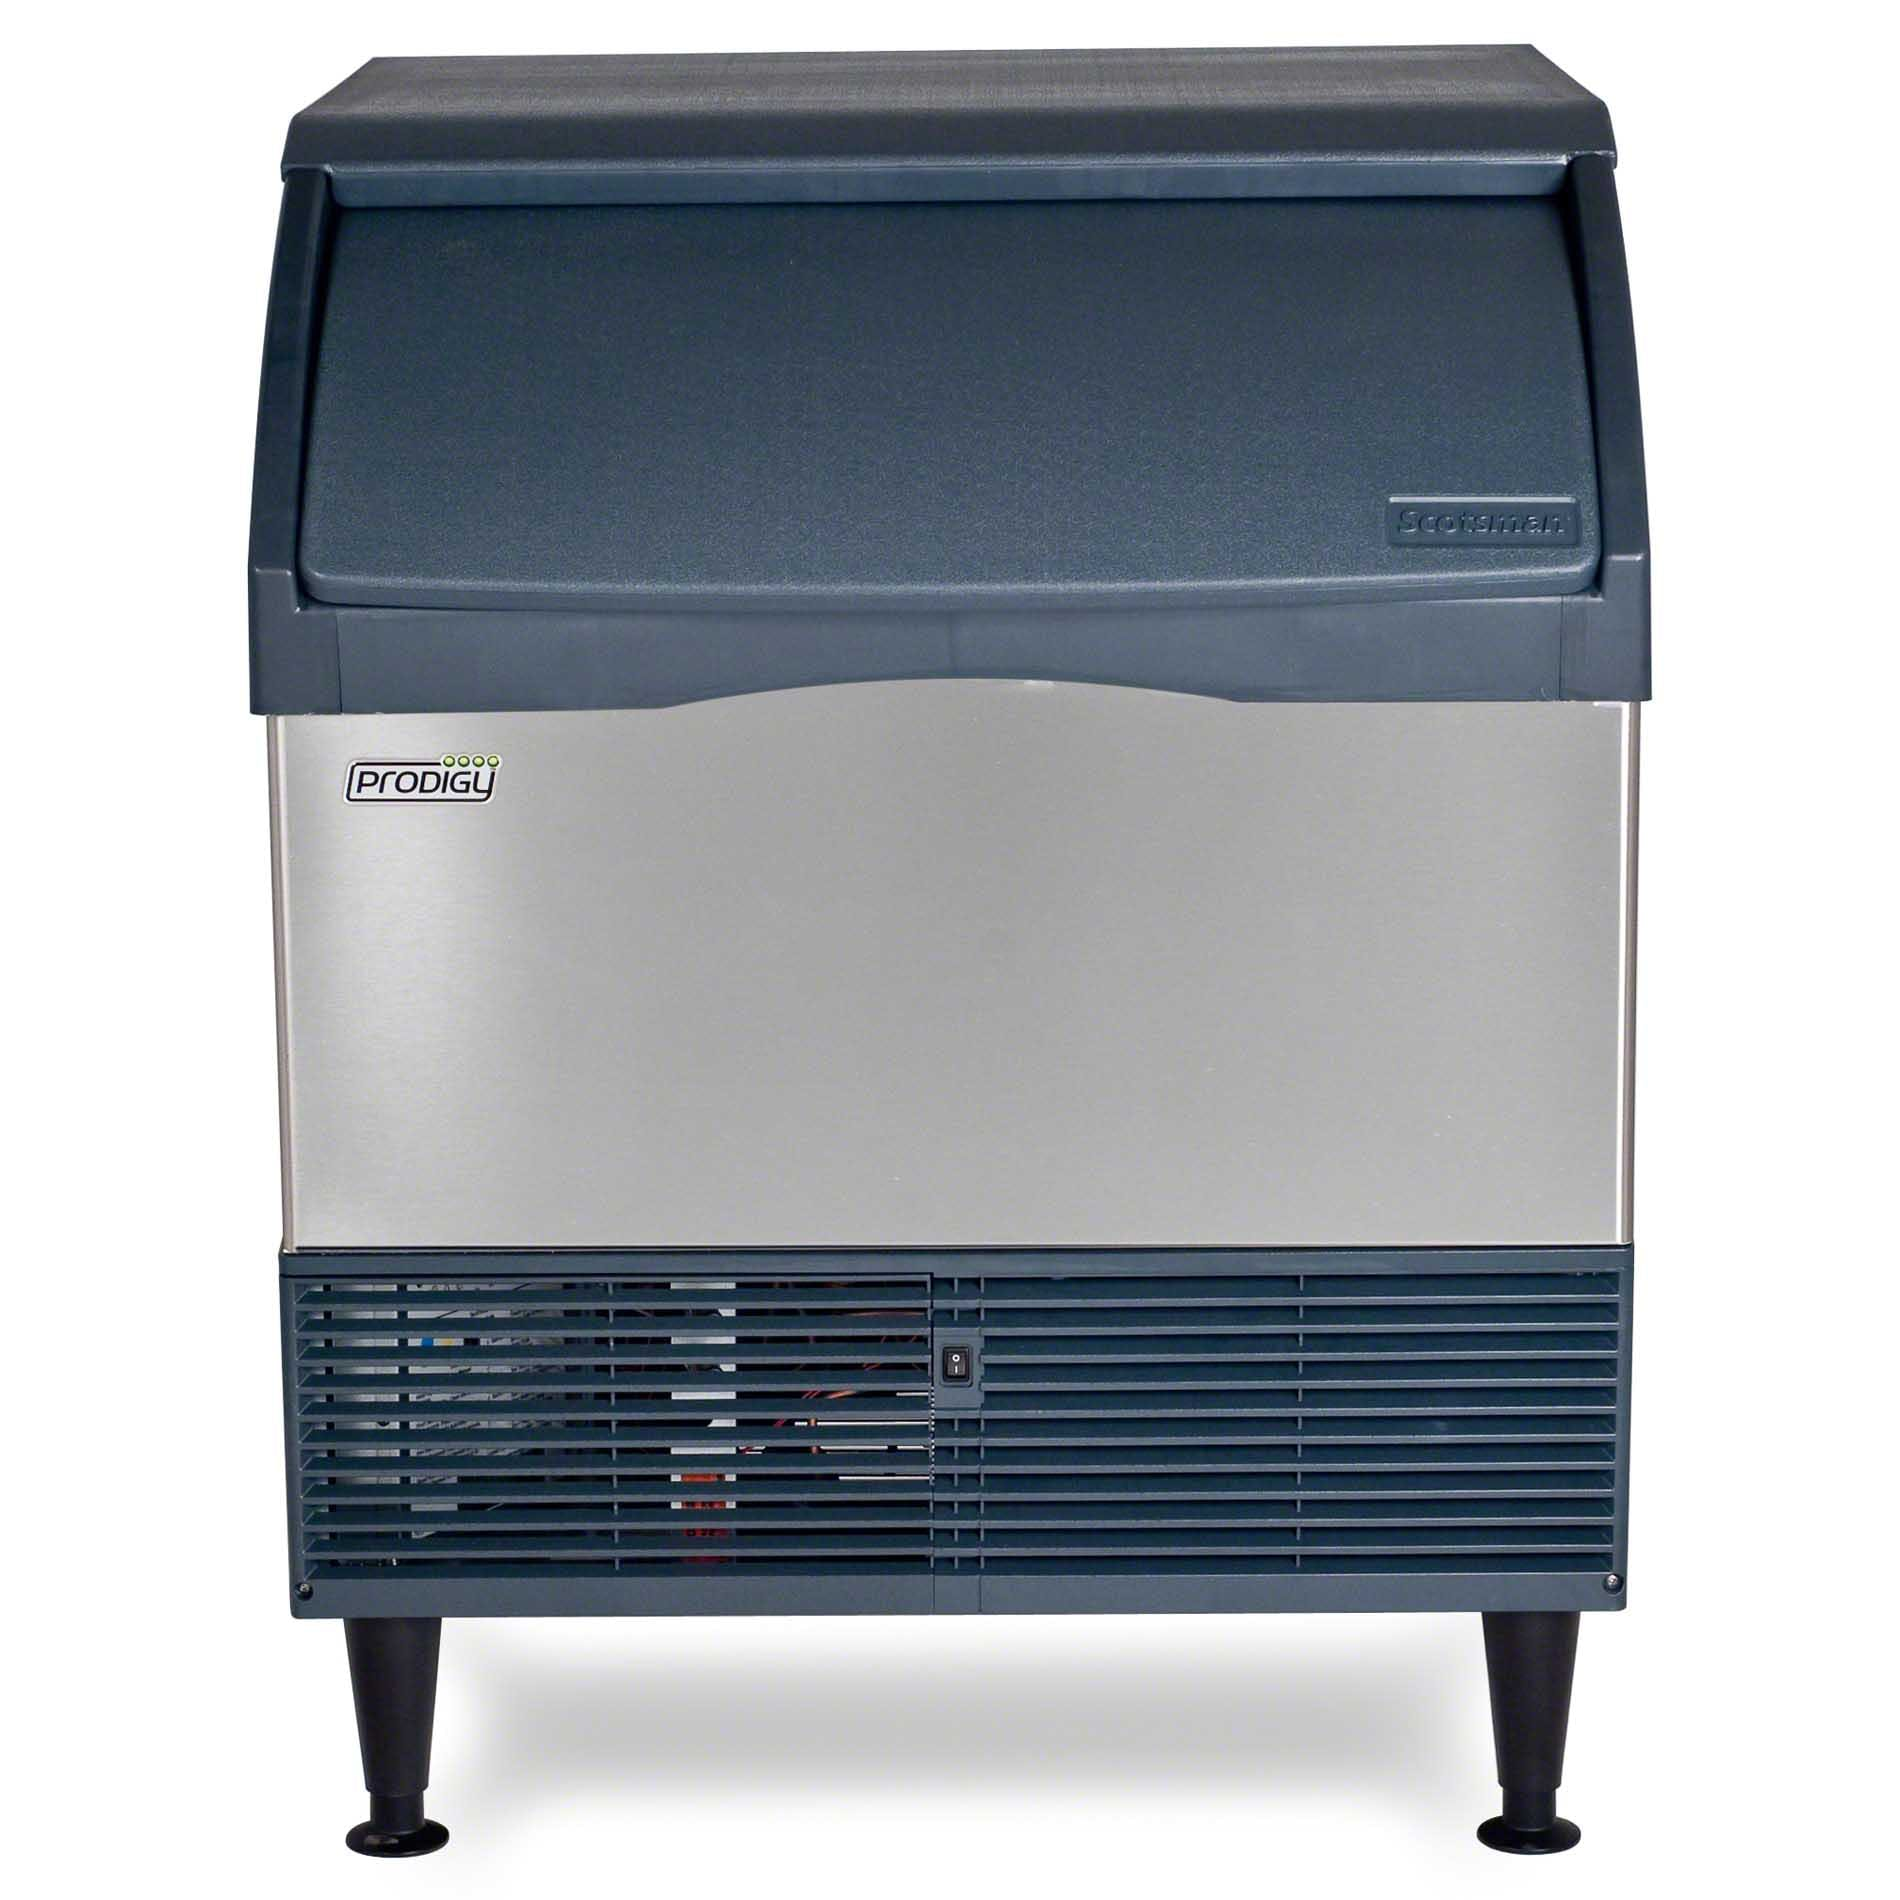 Scotsman - CU3030SW-1A 310 lb Self-Contained Cube Ice Machine - Prodigy® Series Ice machine sold by Food Service Warehouse